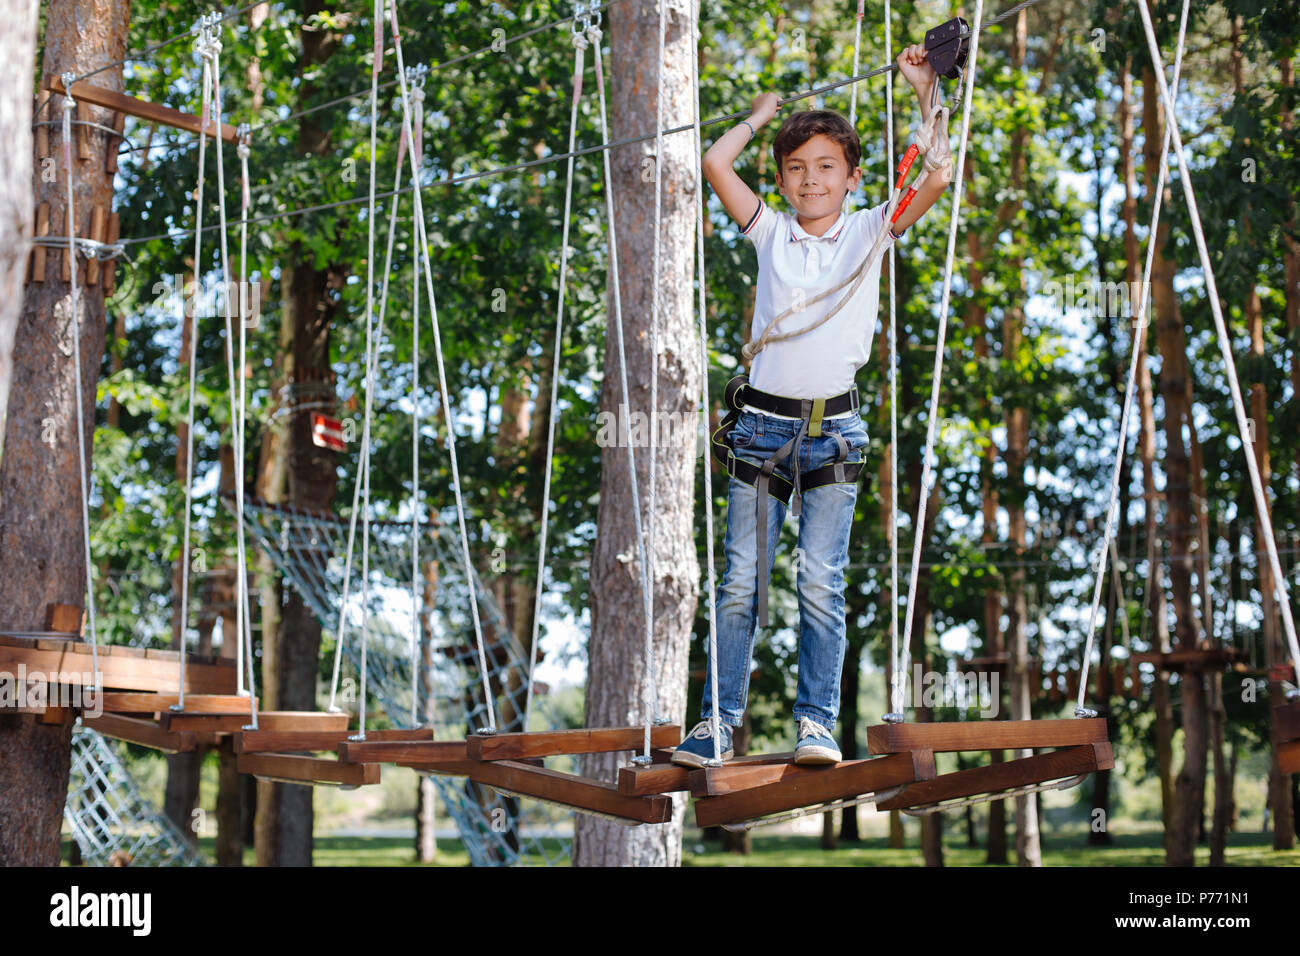 Upbeat preteen boy posing at rope park - Stock Image